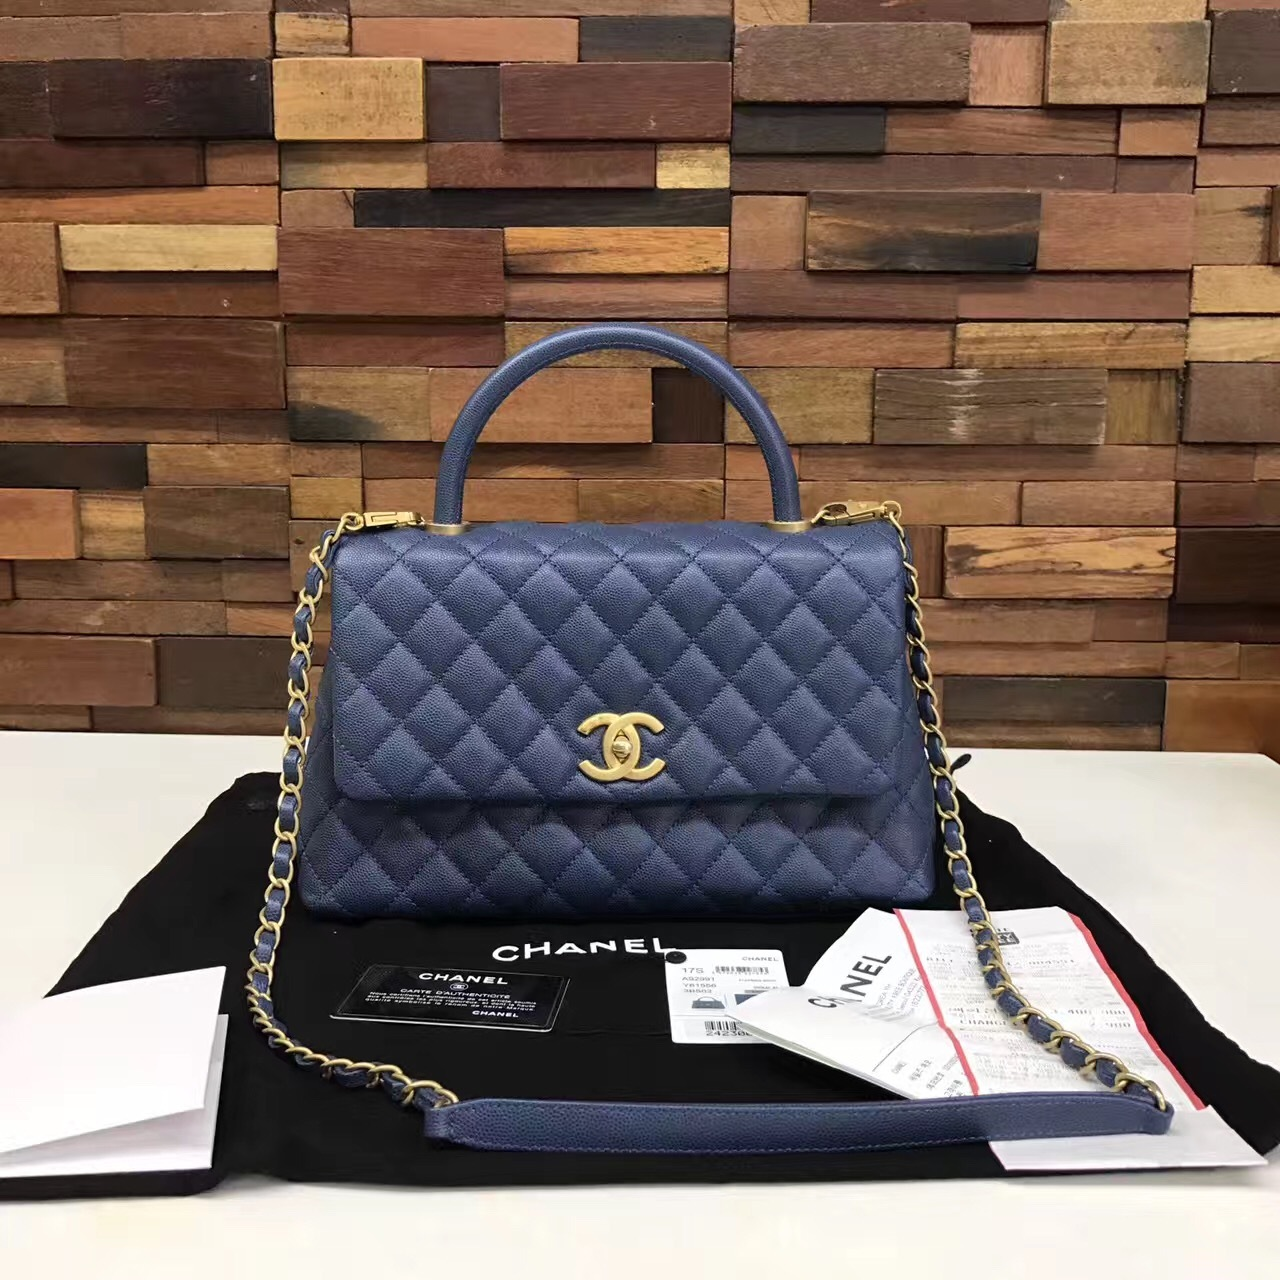 462c05400325 Authentic Chanel 2017 Blue Quilted Caviar and 50 similar items. Img 2370